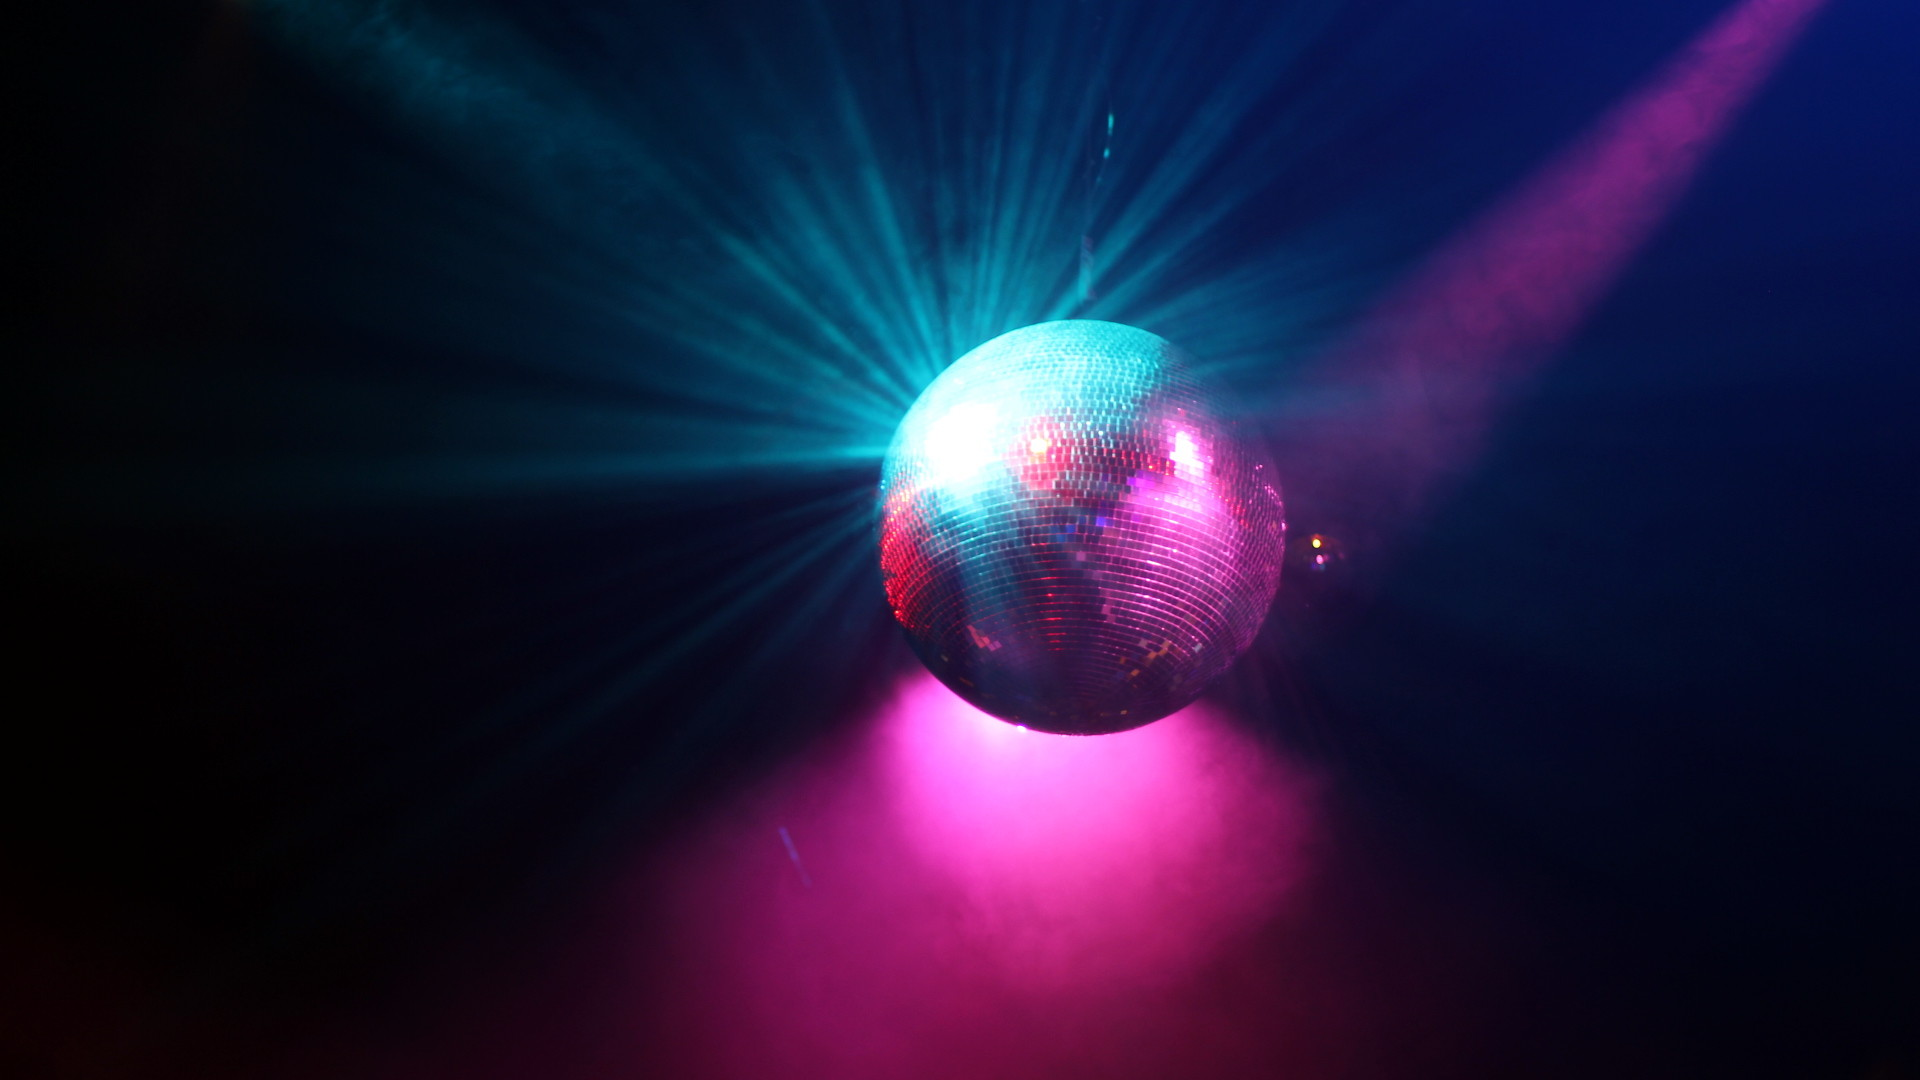 Disco Ball Wallpaper 56 Images HD Wallpapers Download Free Images Wallpaper [1000image.com]